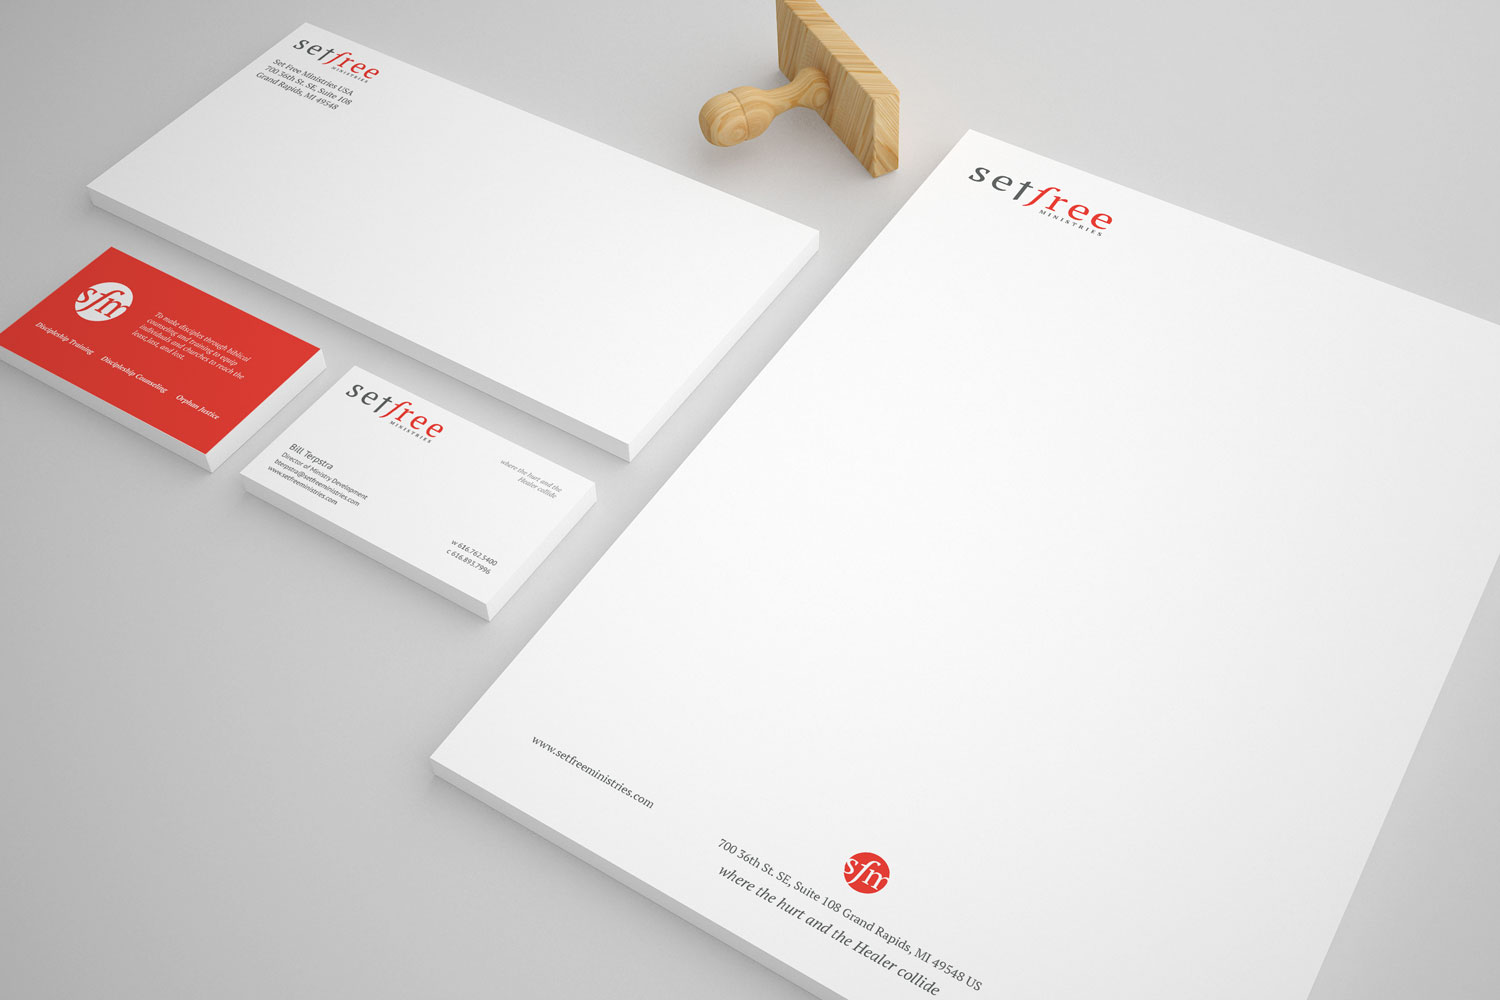 Set Free stationary mock up